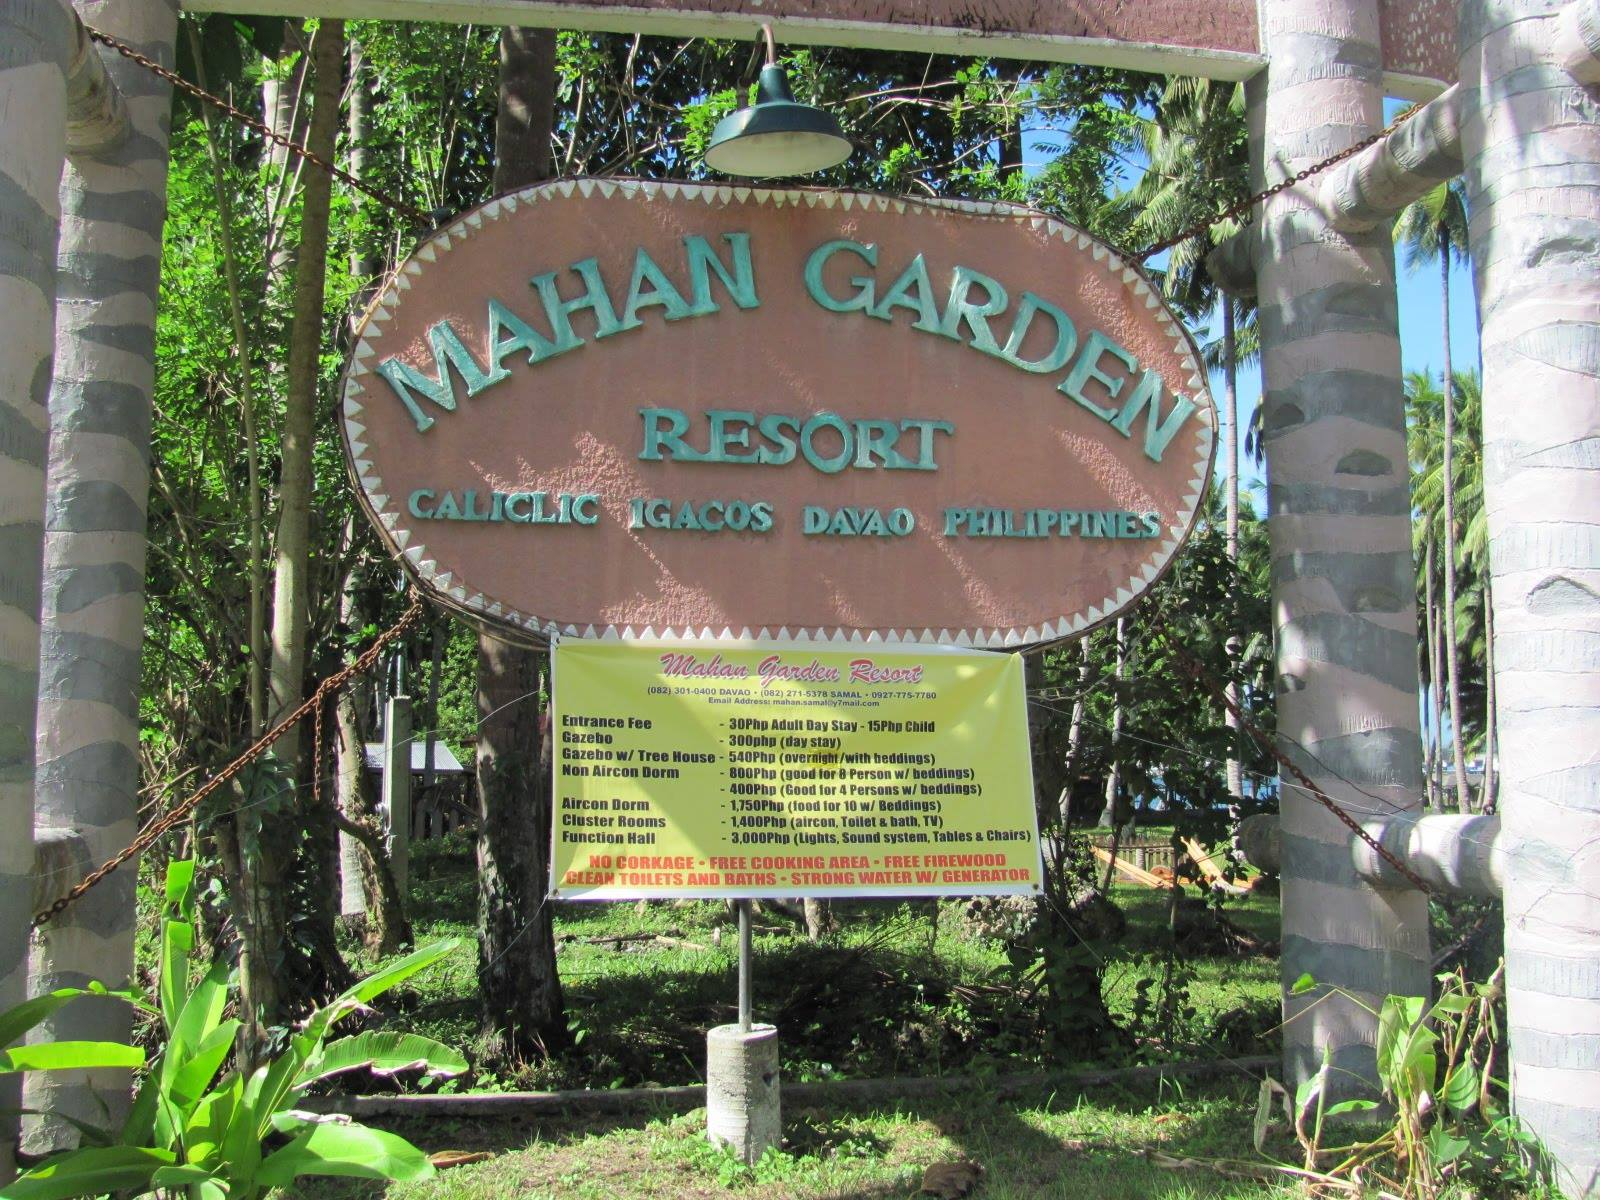 Mahan Garden Resort 1 profile